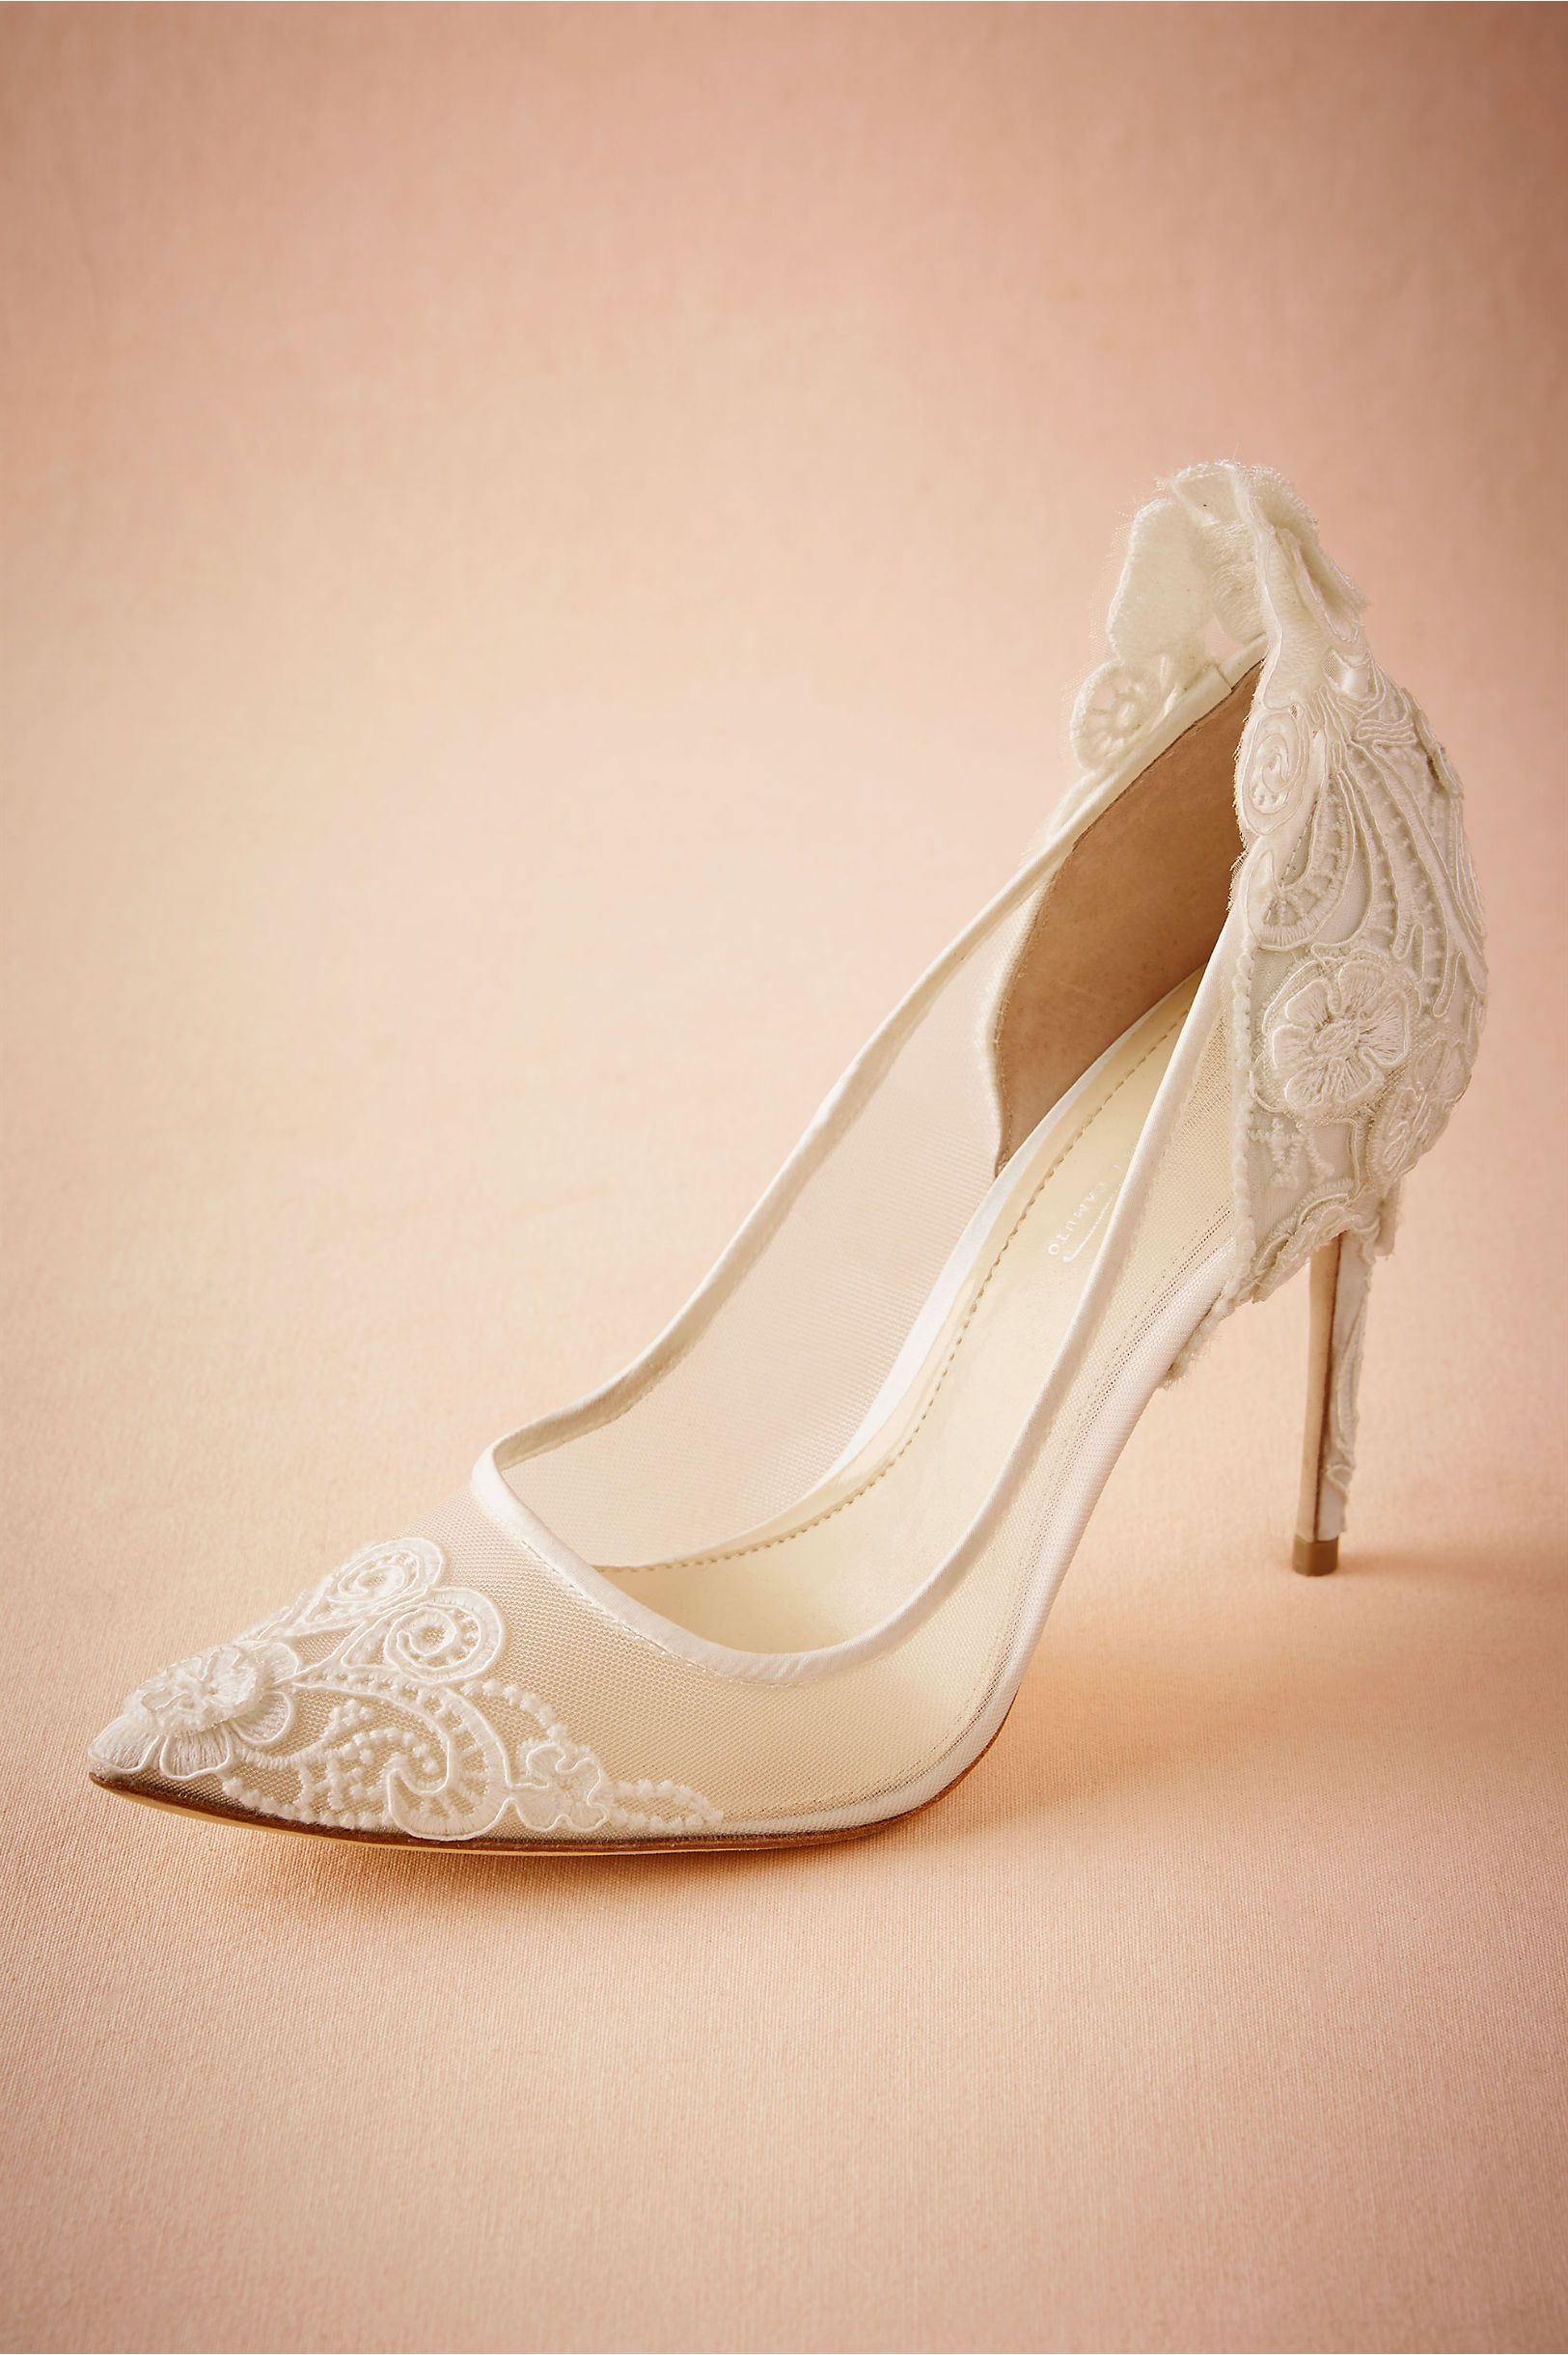 Vince Camuto Victoria Pumps Ivory In Shoes Accessories Bhldn Bride Shoes Country Shoes Boots Bridal Shoes